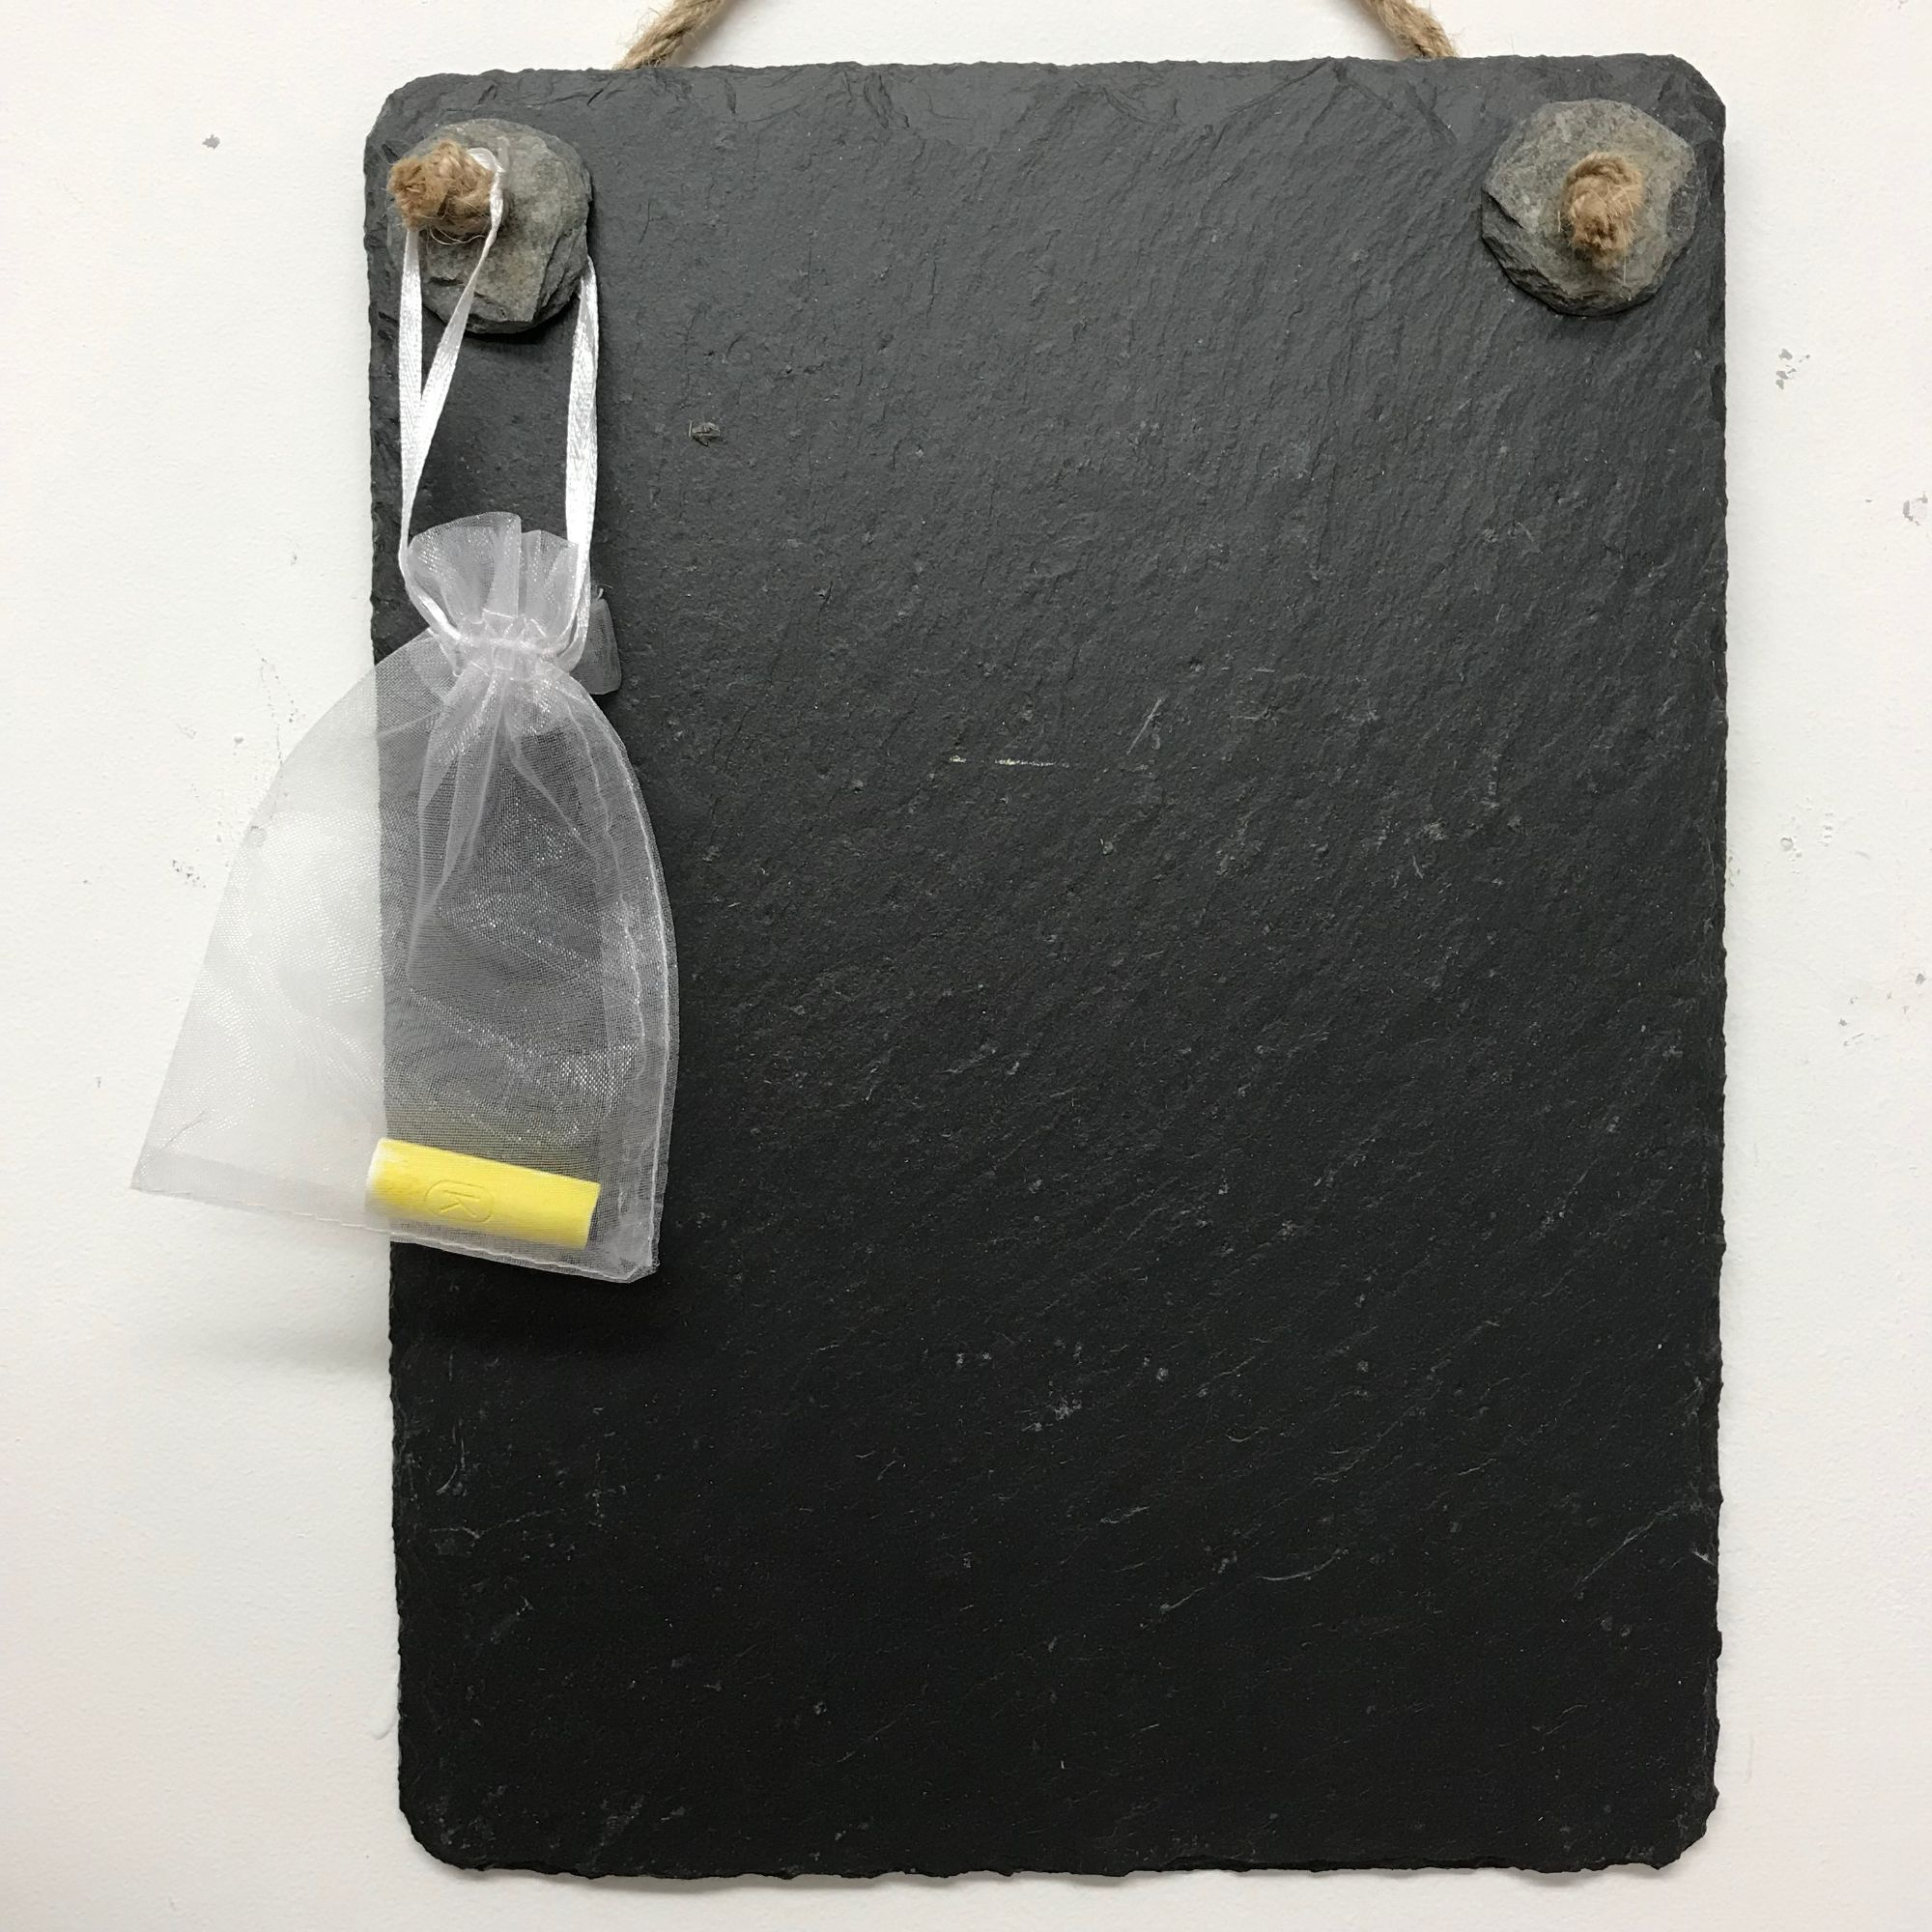 Drfitmoods from Devon make lovely slate clocks